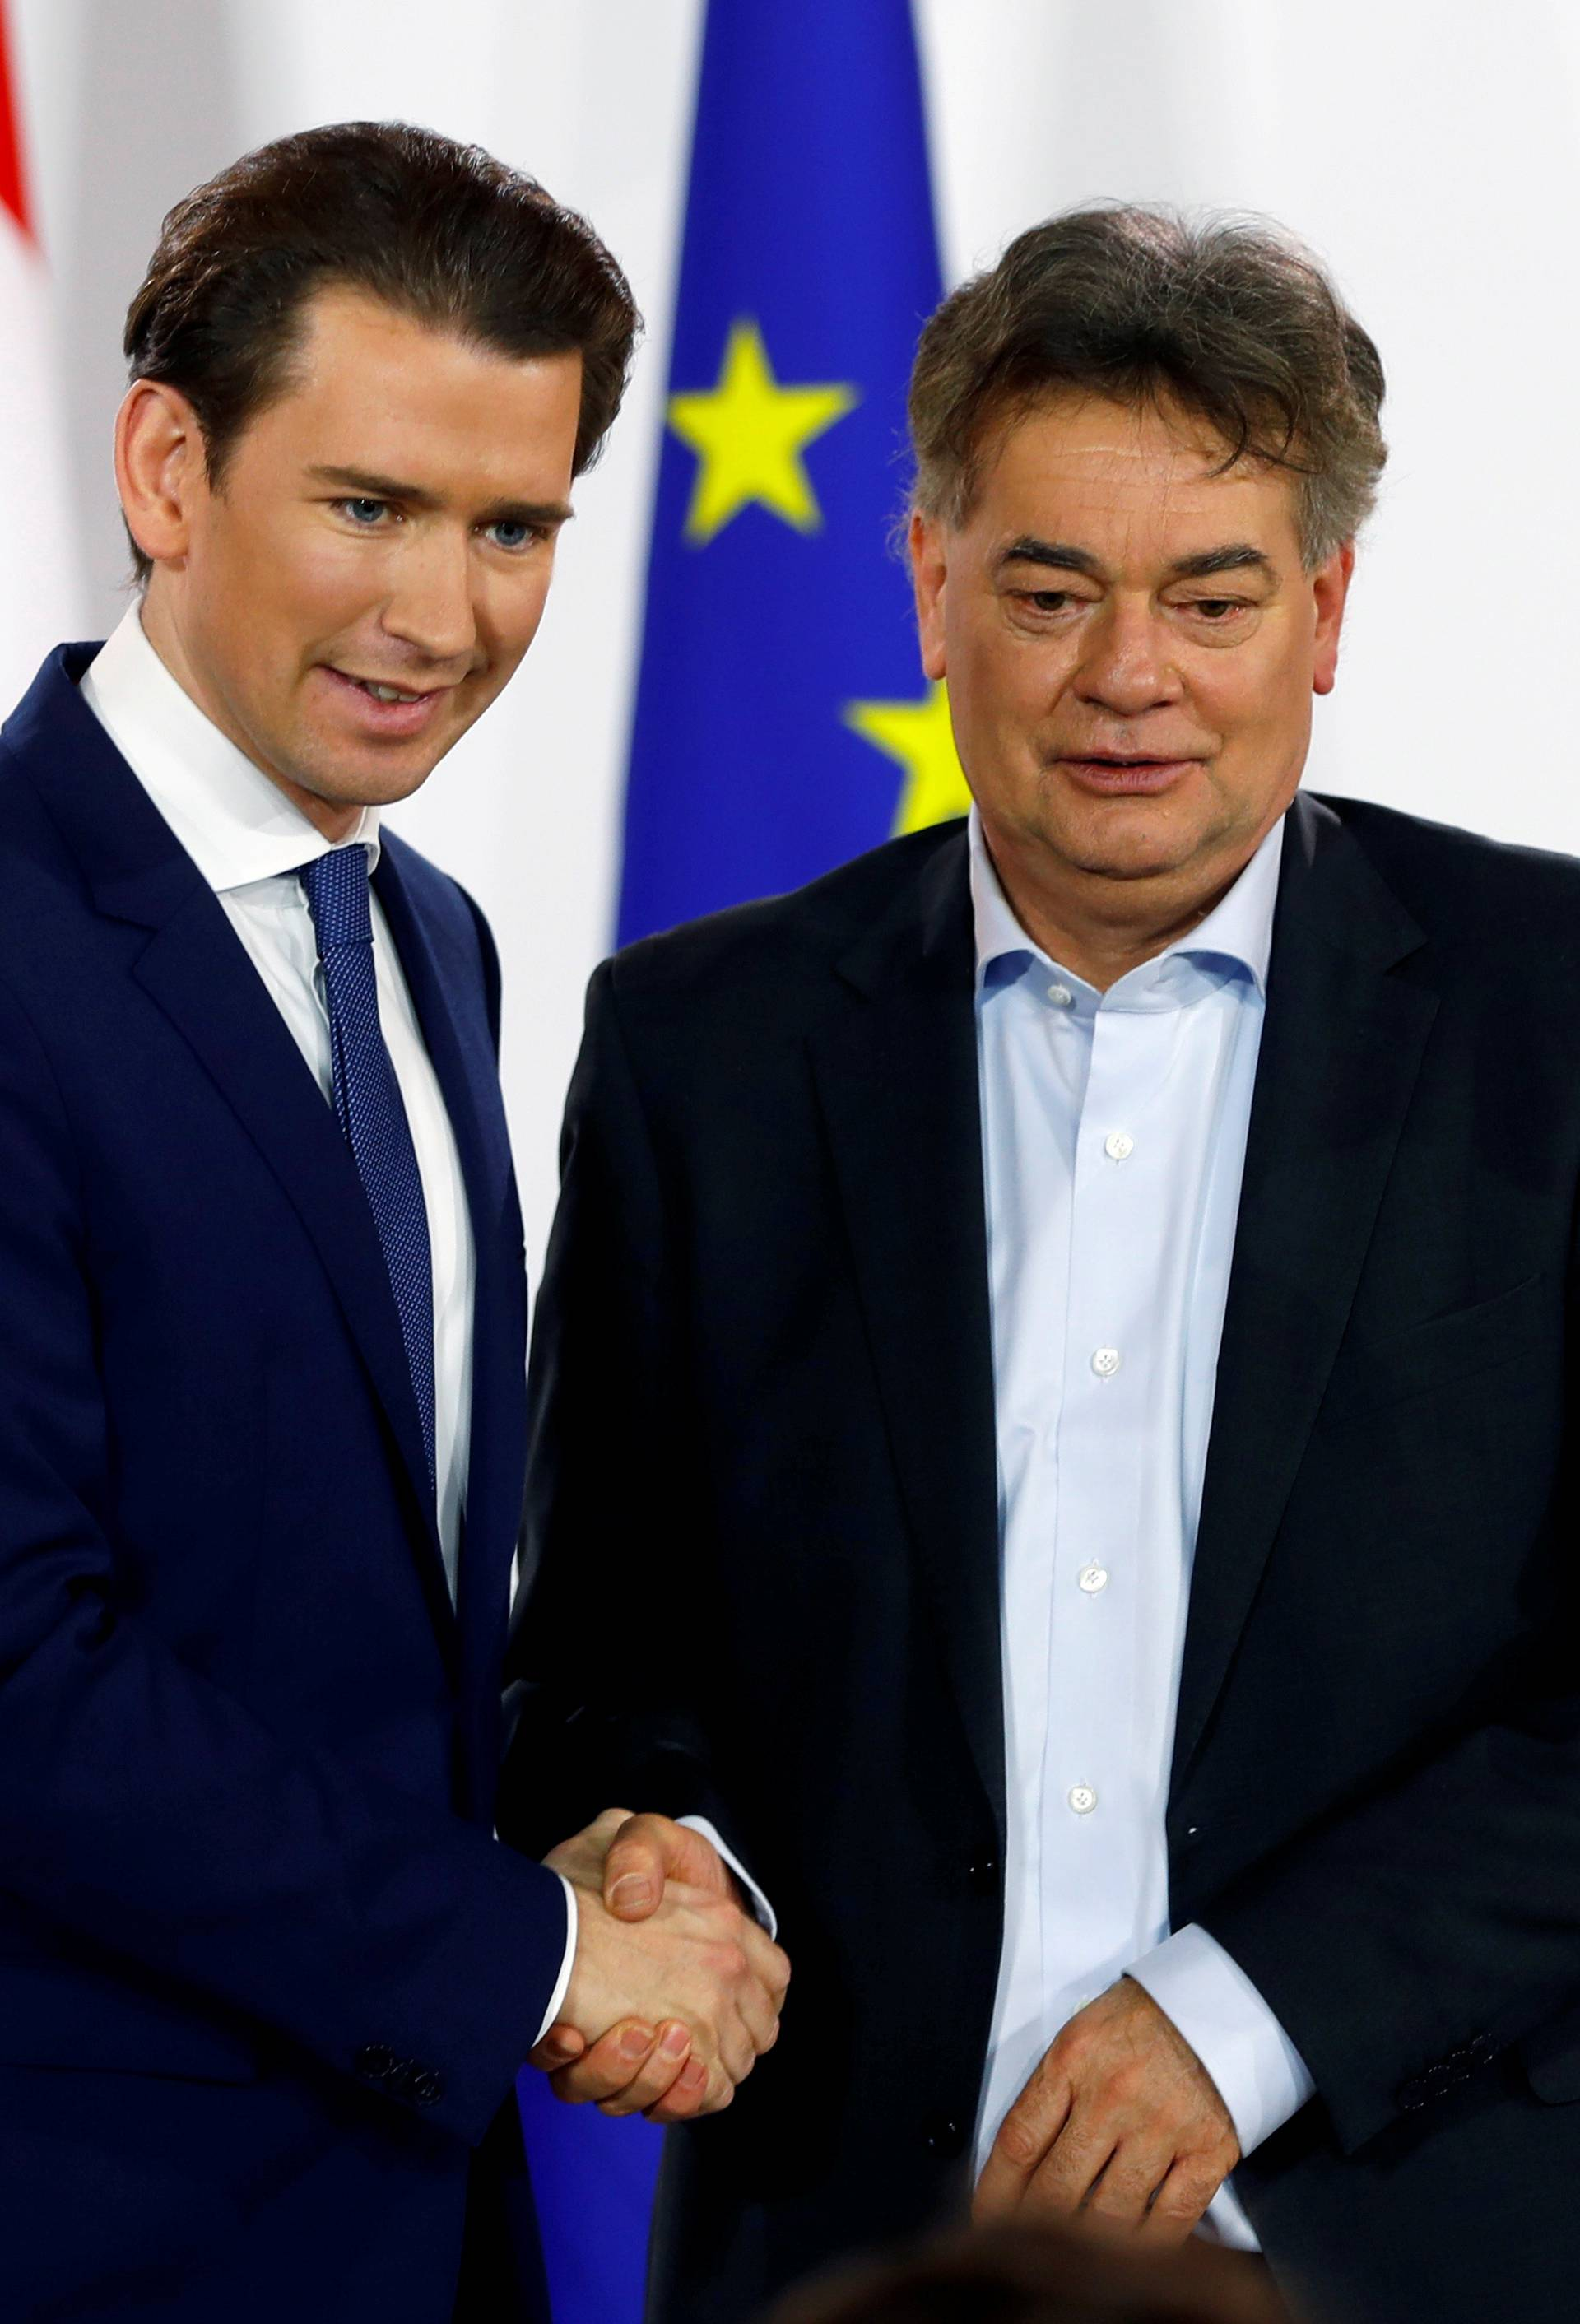 FILE PHOTO: Head of Austria's Green Party Werner Kogler and head of People's Party (OeVP) Sebastian Kurz shake hands after delivering a statement in Vienna